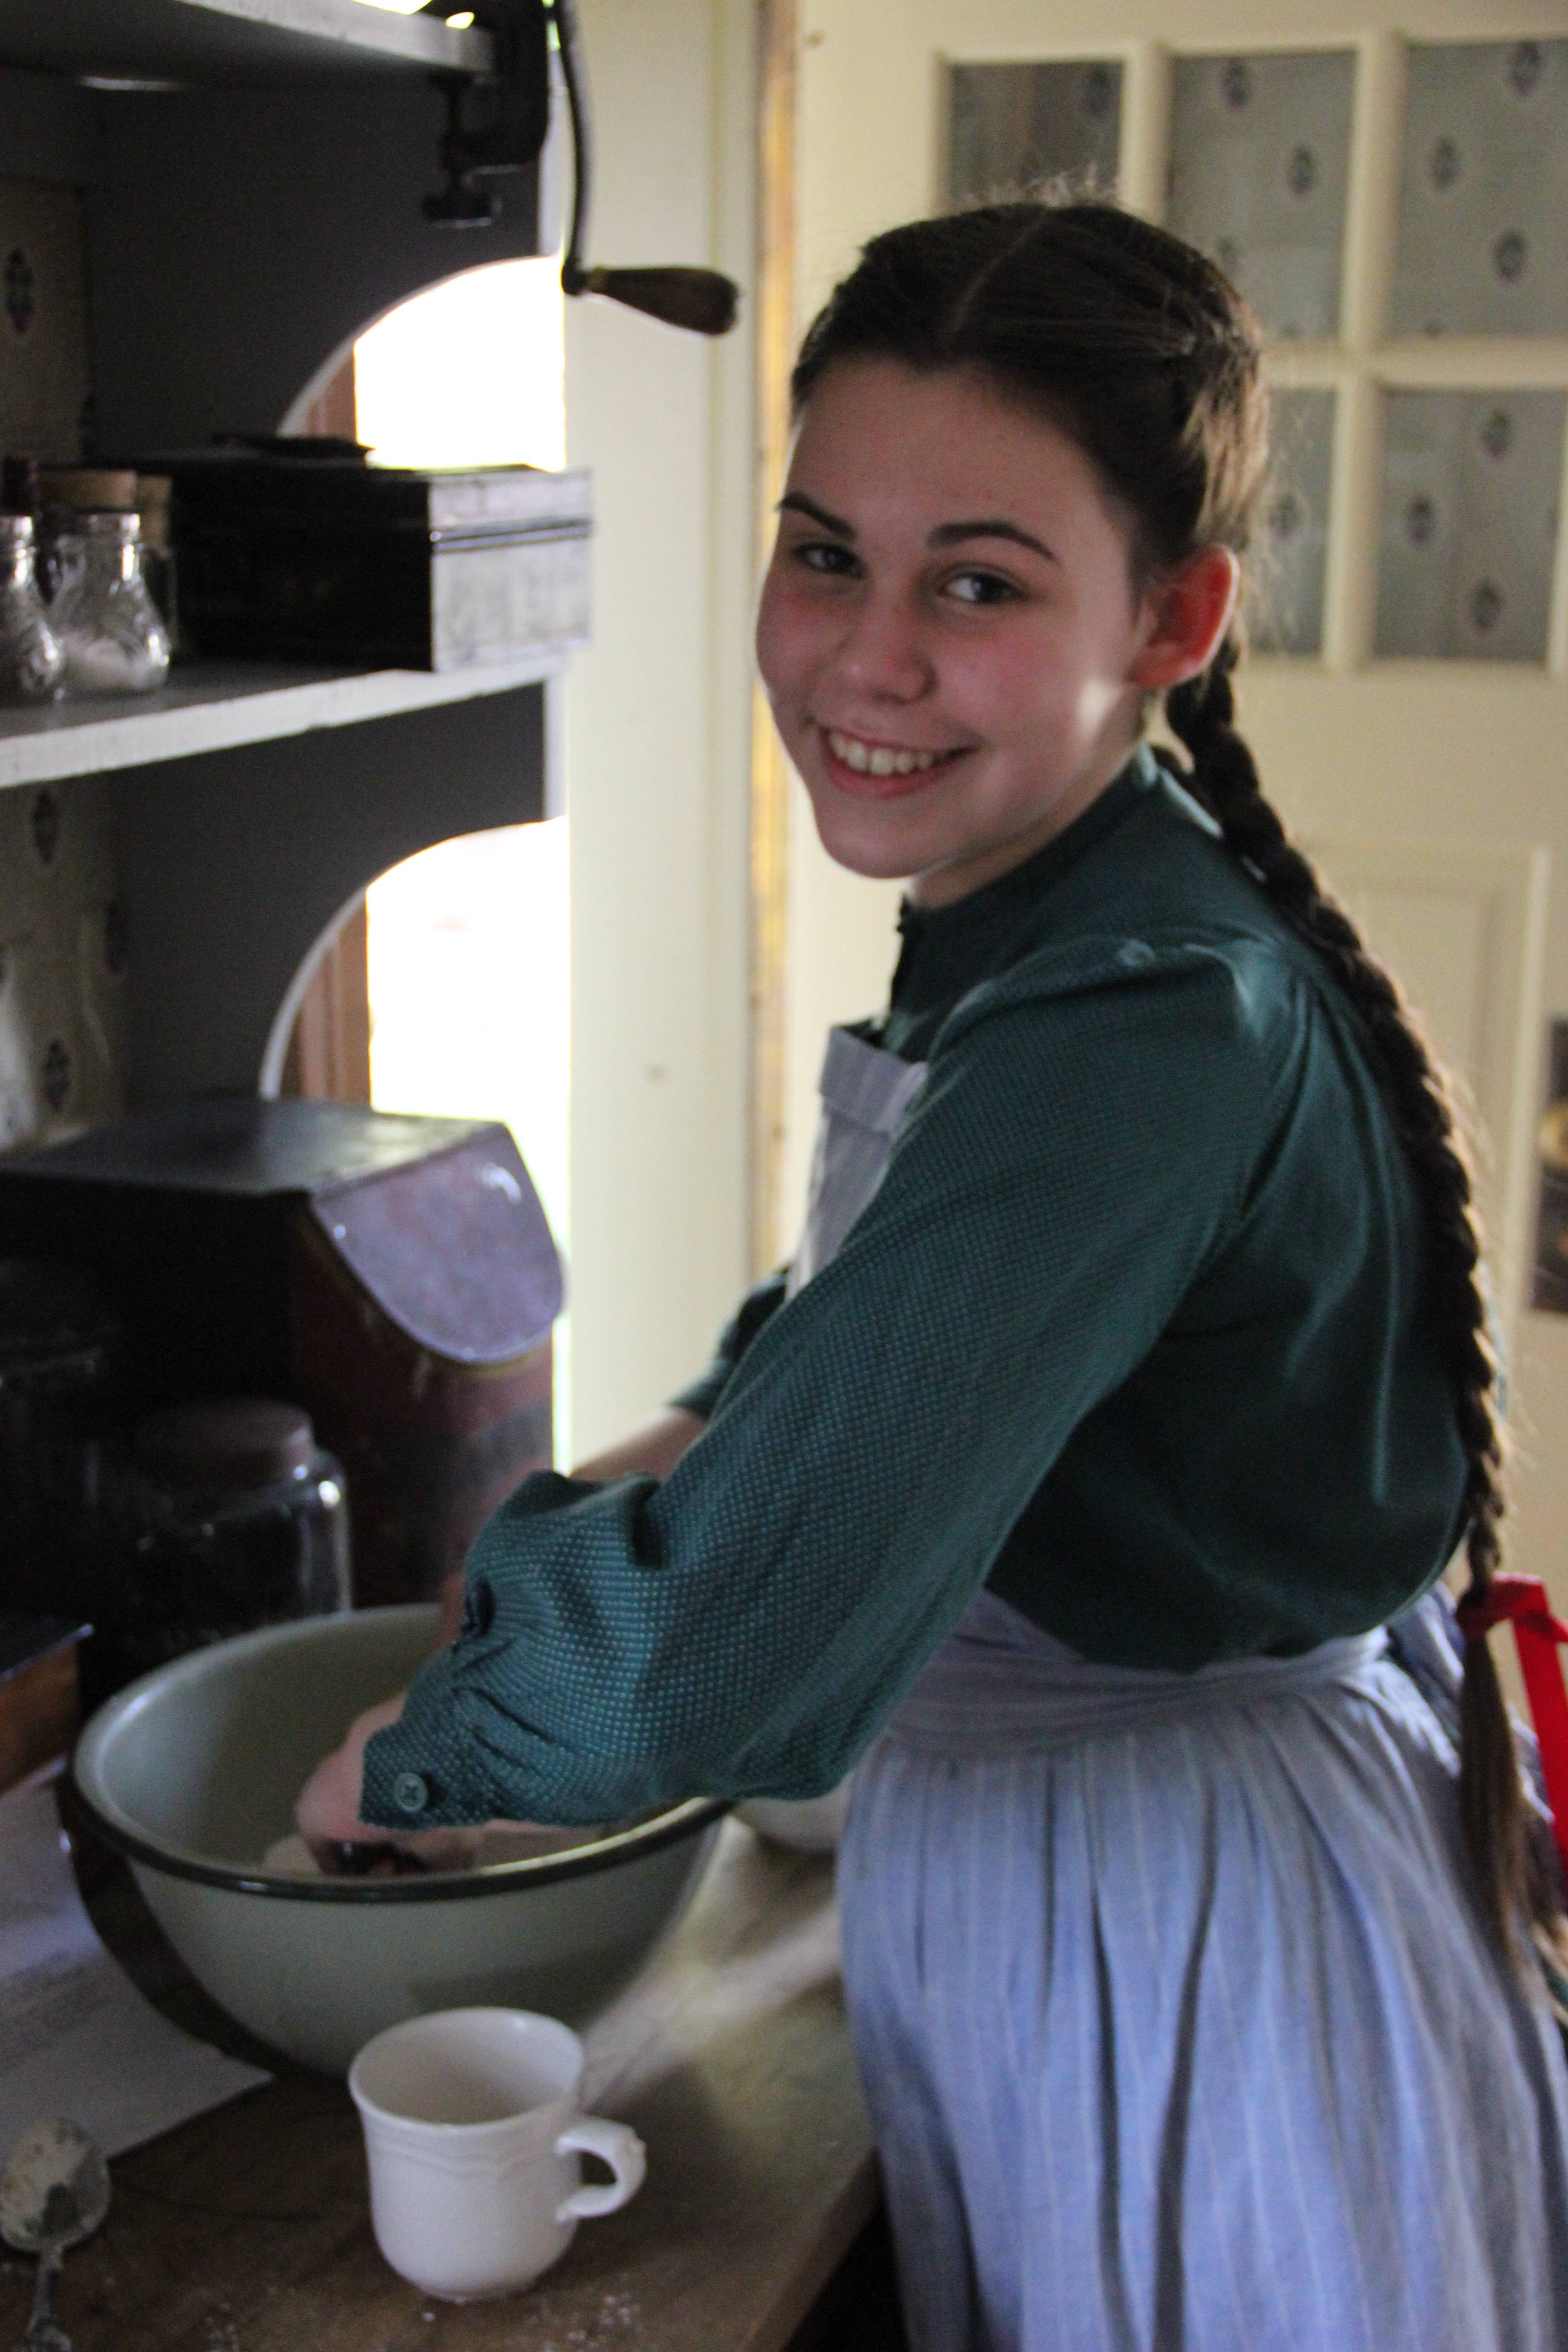 A Heritage Farm volunteer prepares treats at a recent special event.